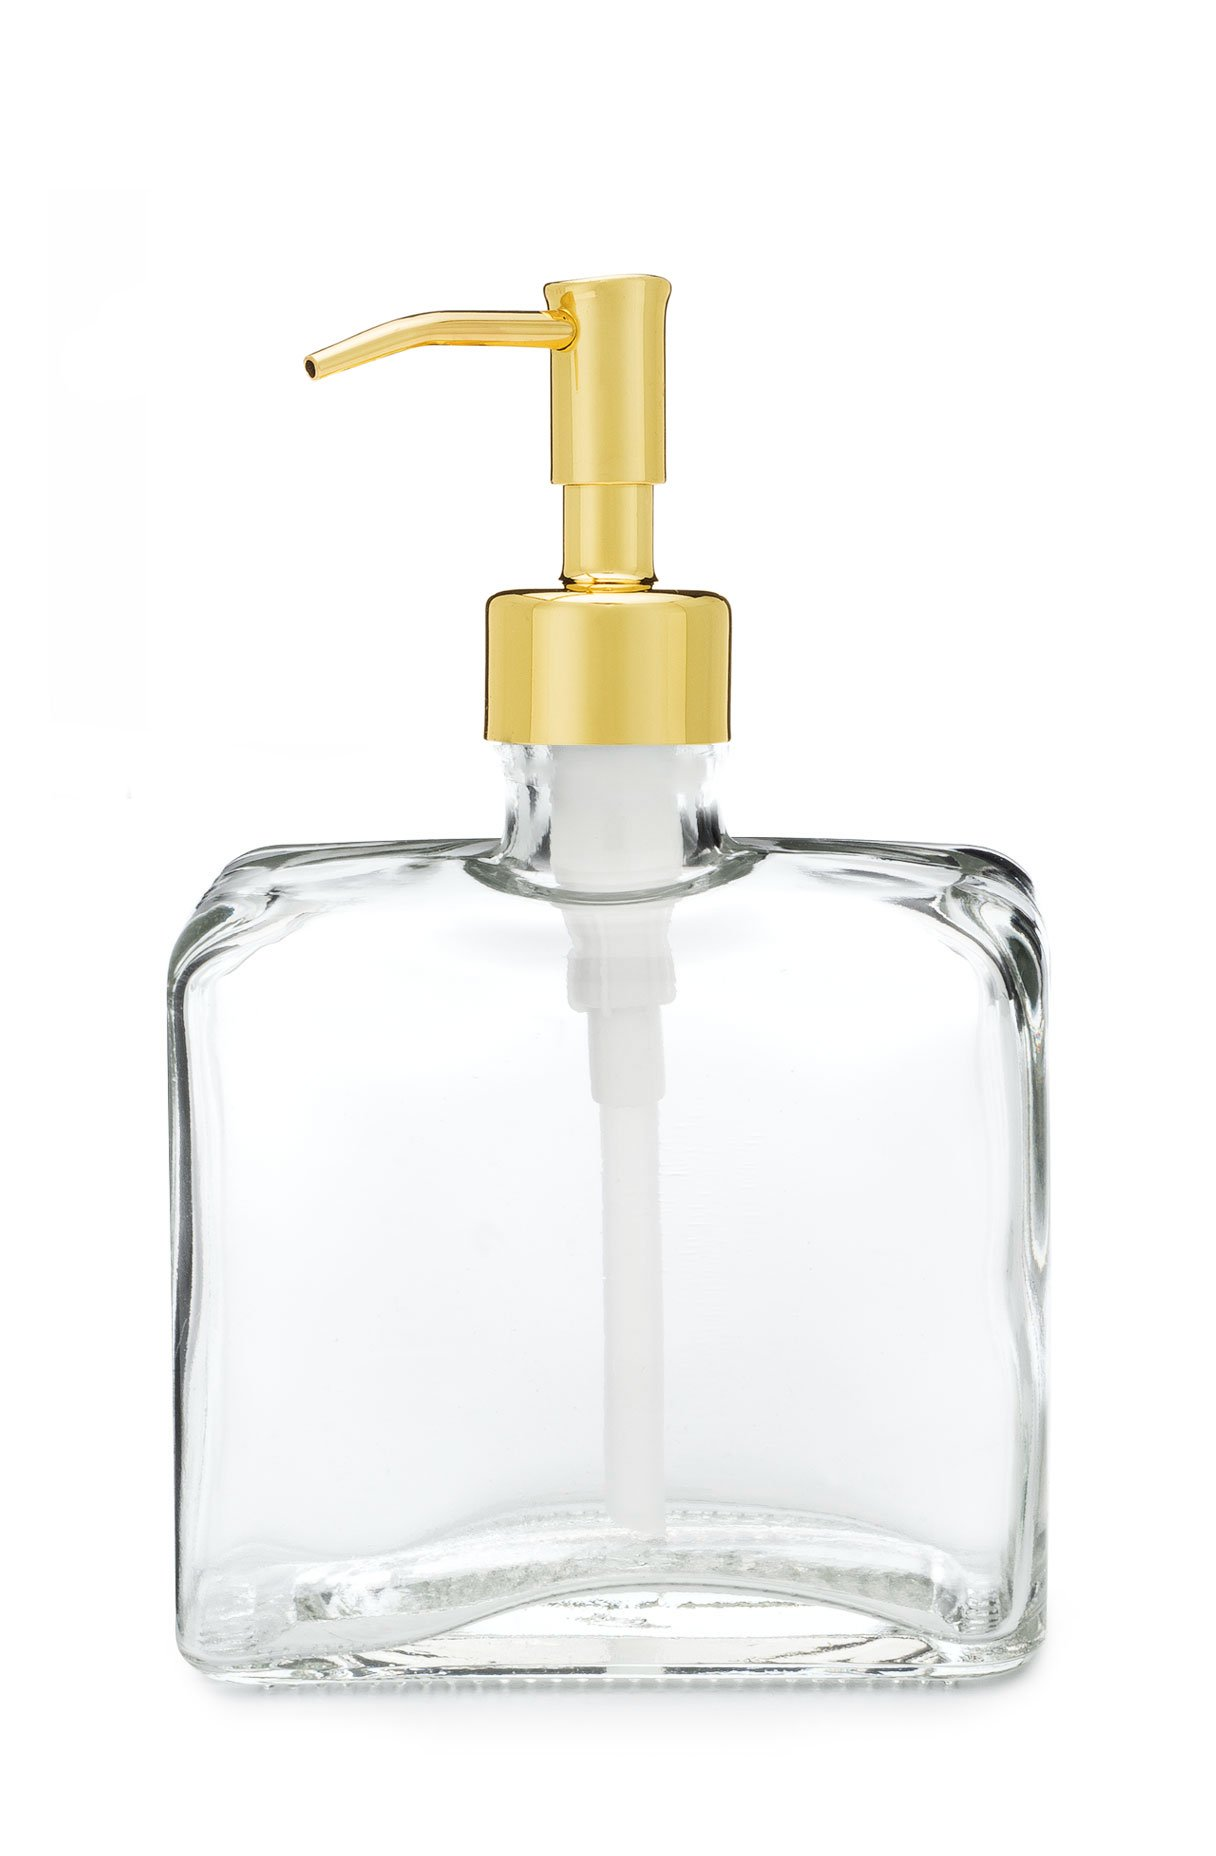 Urban Square Recycled Glass Soap Dispenser with Metal Pump (Gold)